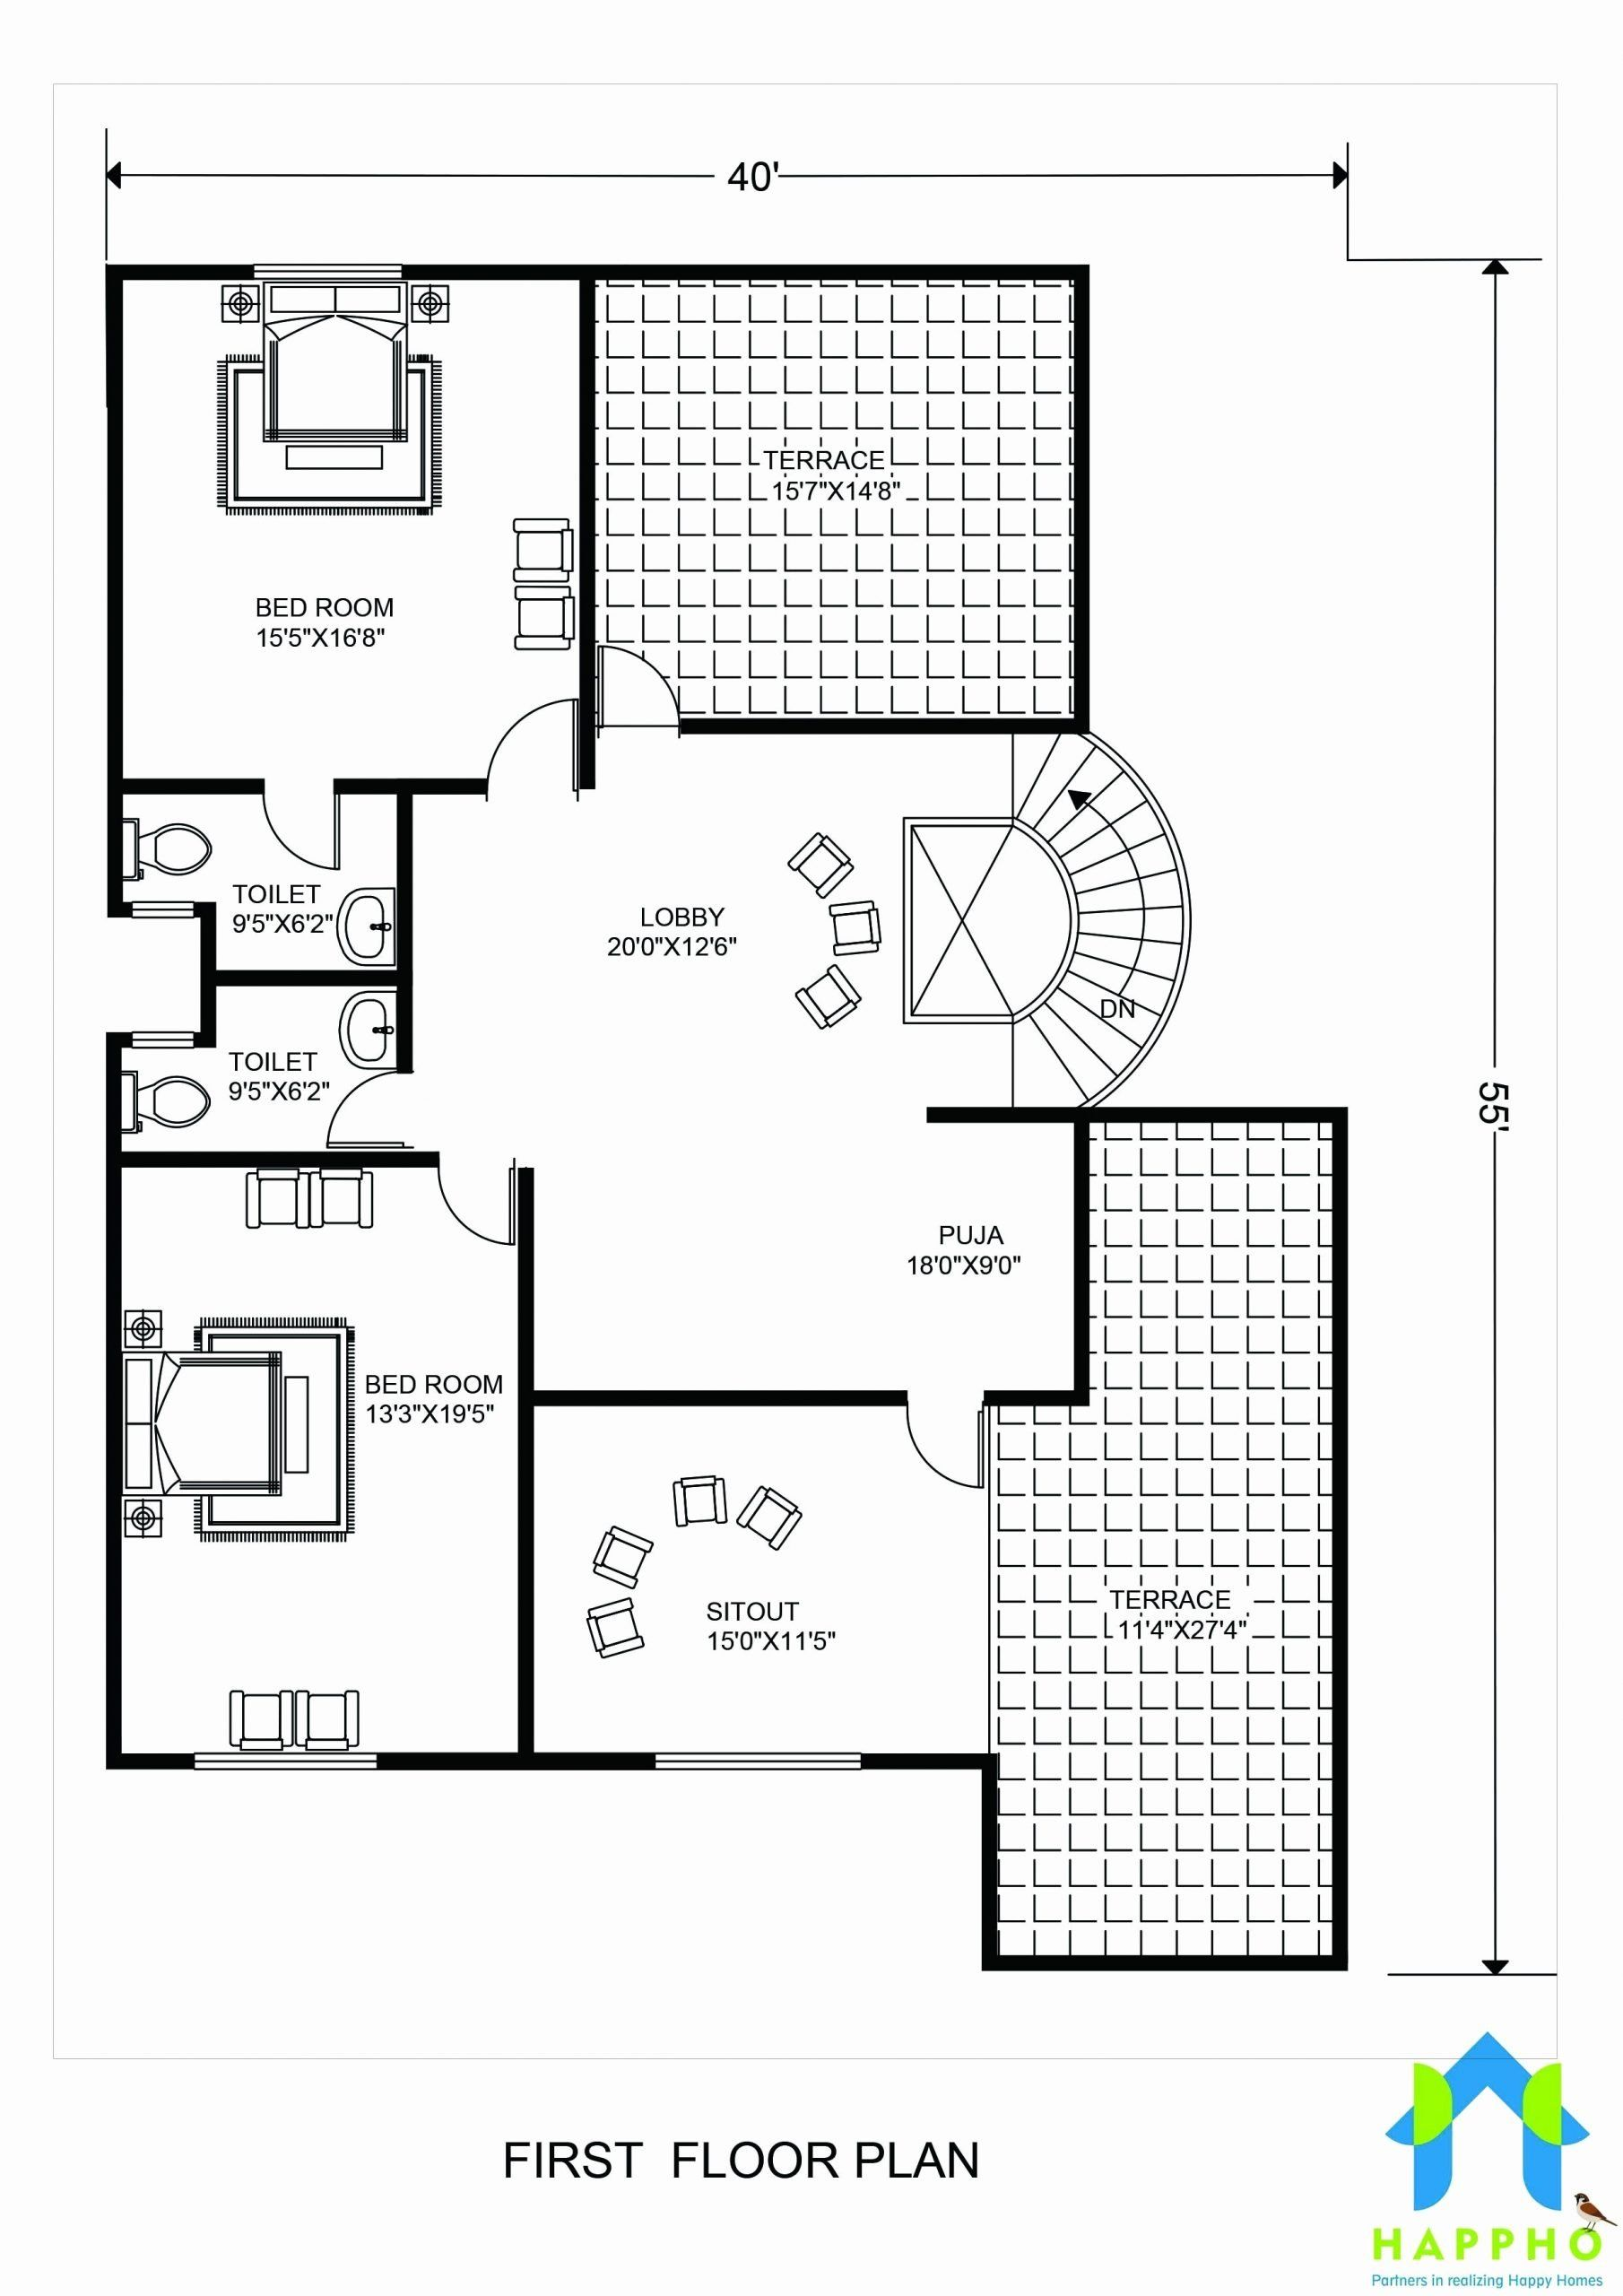 2200 Square Feet Home Design New Floor Plan For 40 X 55 Feet Plot Unique Floor Plans 2200 Sq Ft House Plans Luxury Floor Plans